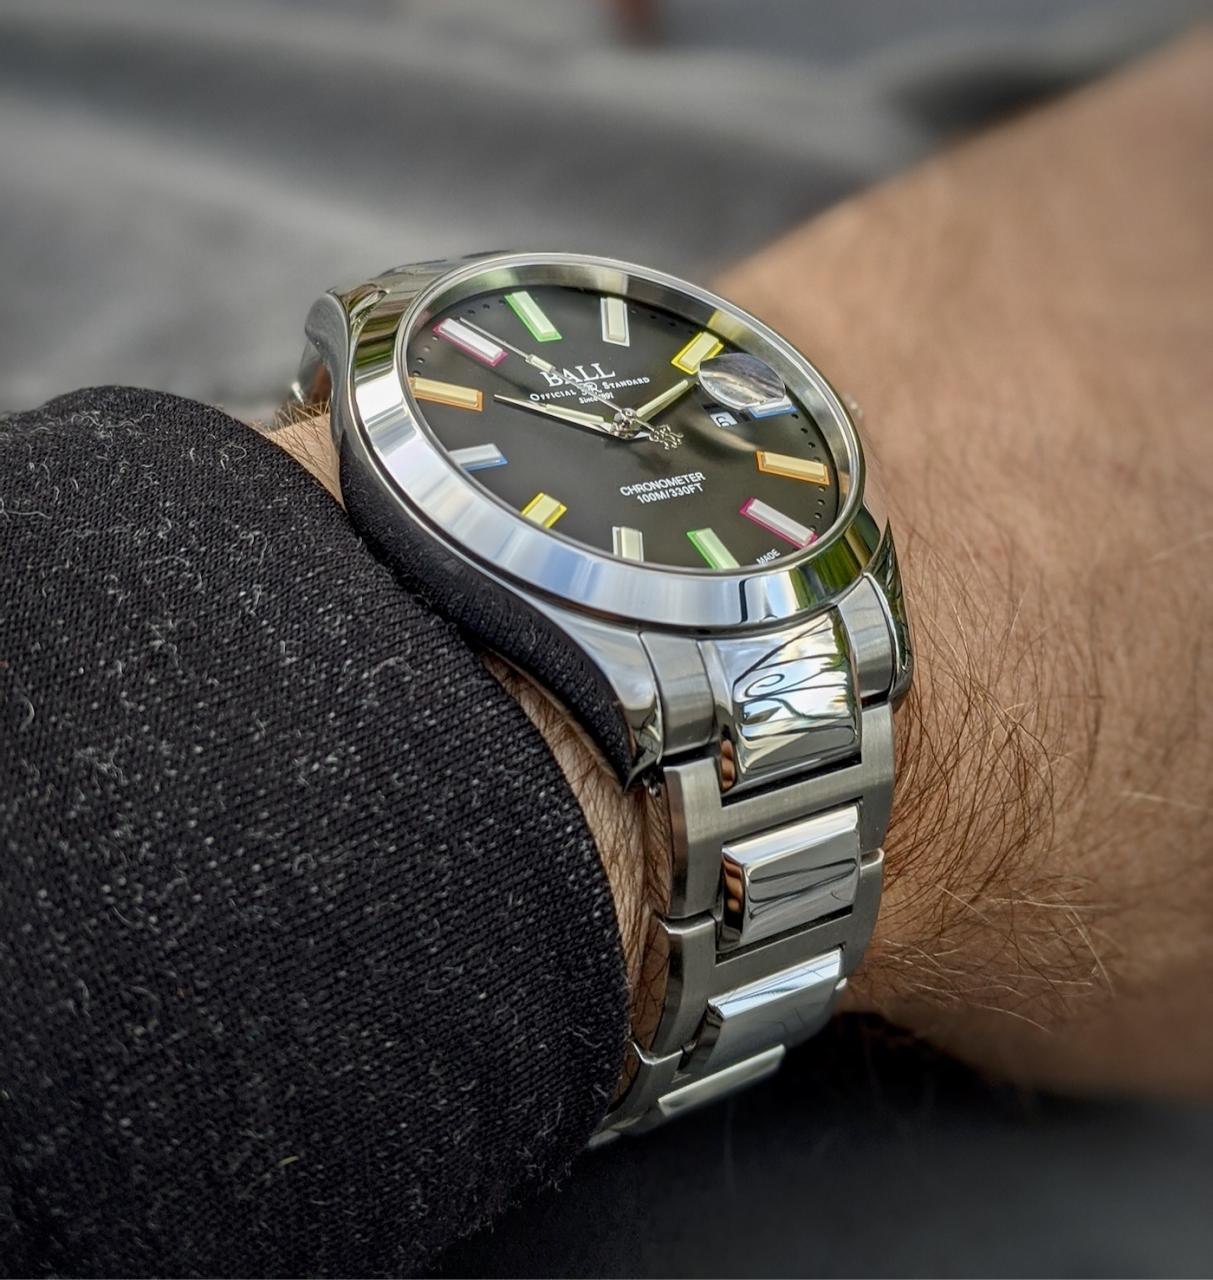 Watch Review: BALL Fake Watch Engineer III Marvelight Caring Edition Wrist Time Reviews